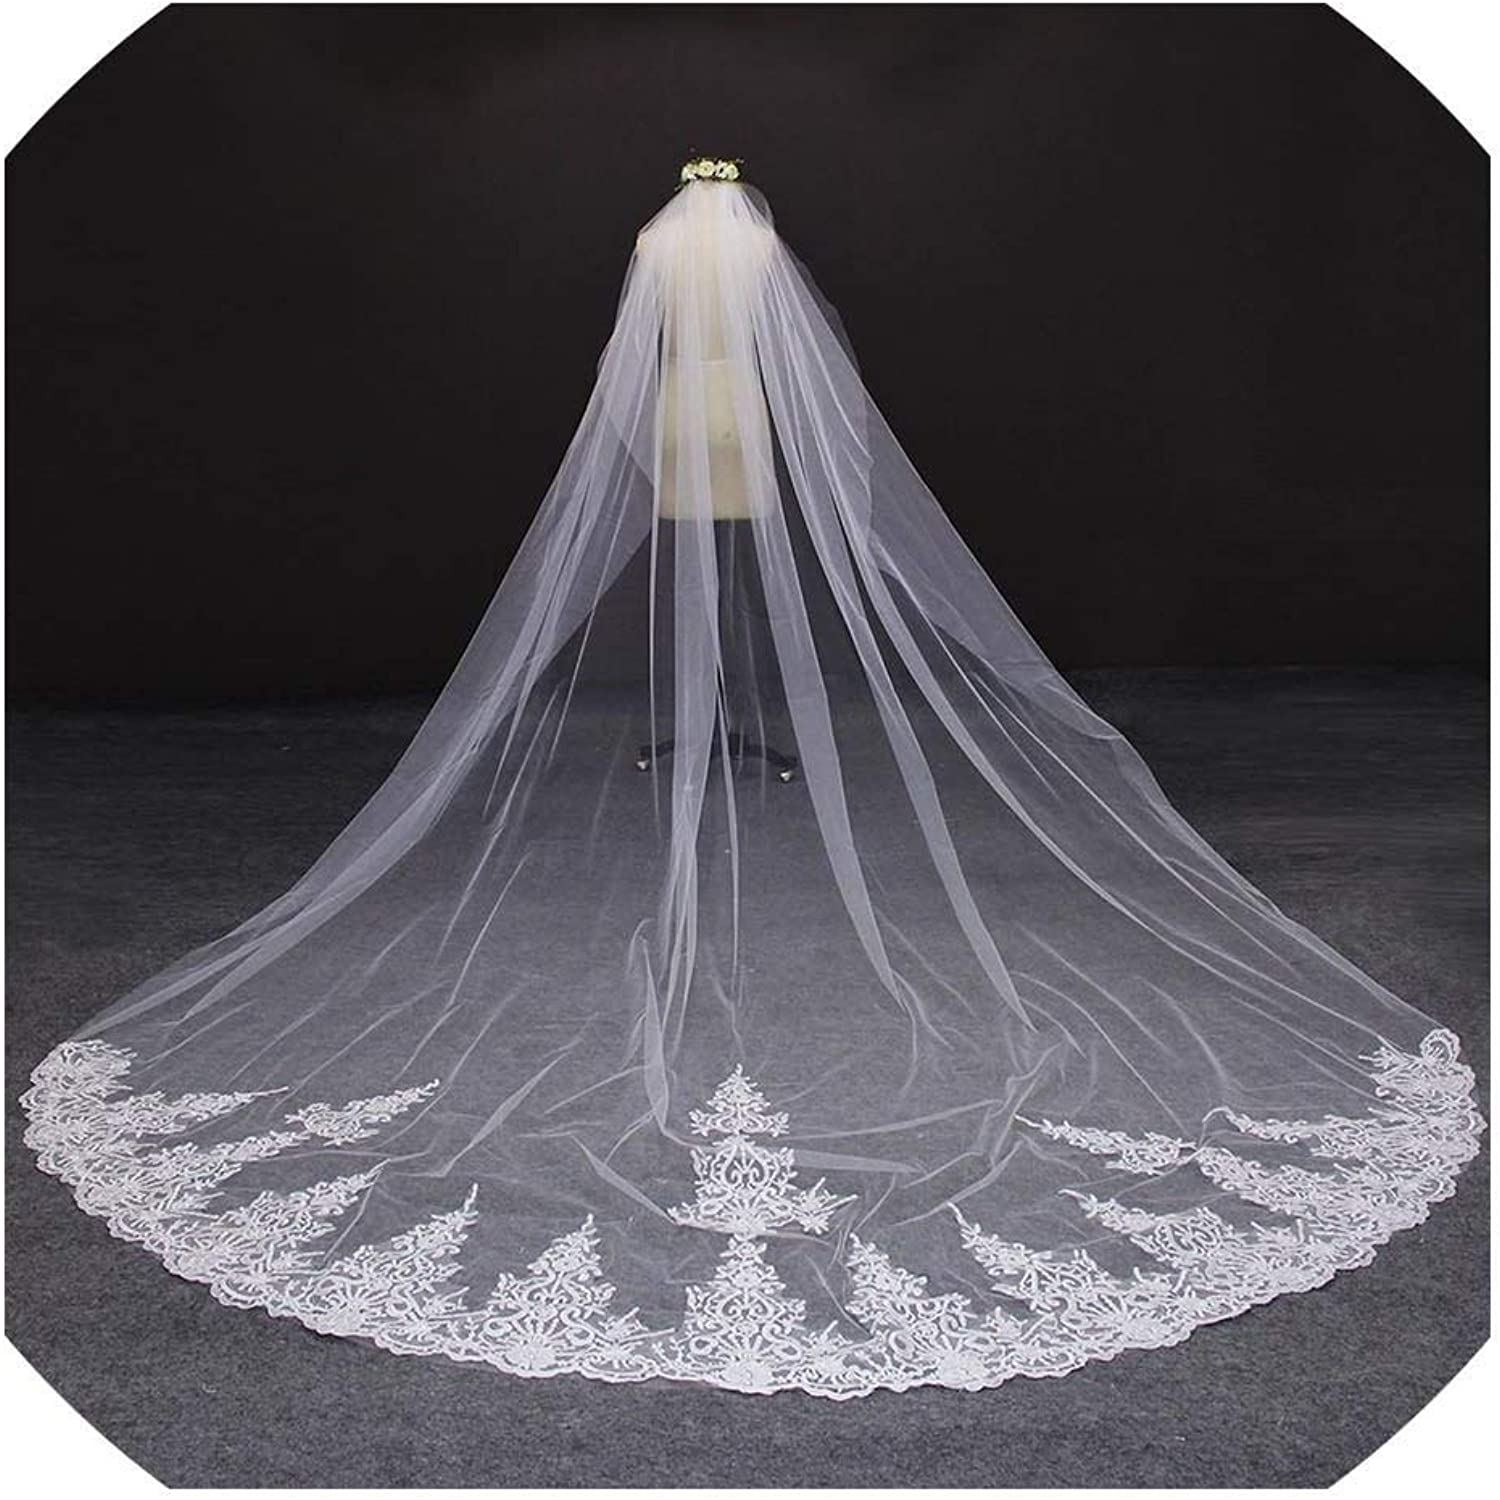 4 Meter White Ivory One Layer Beautiful Cathedral Length Lace Edge Wedding Veil With Comb Long Bridal Veil,Ivory